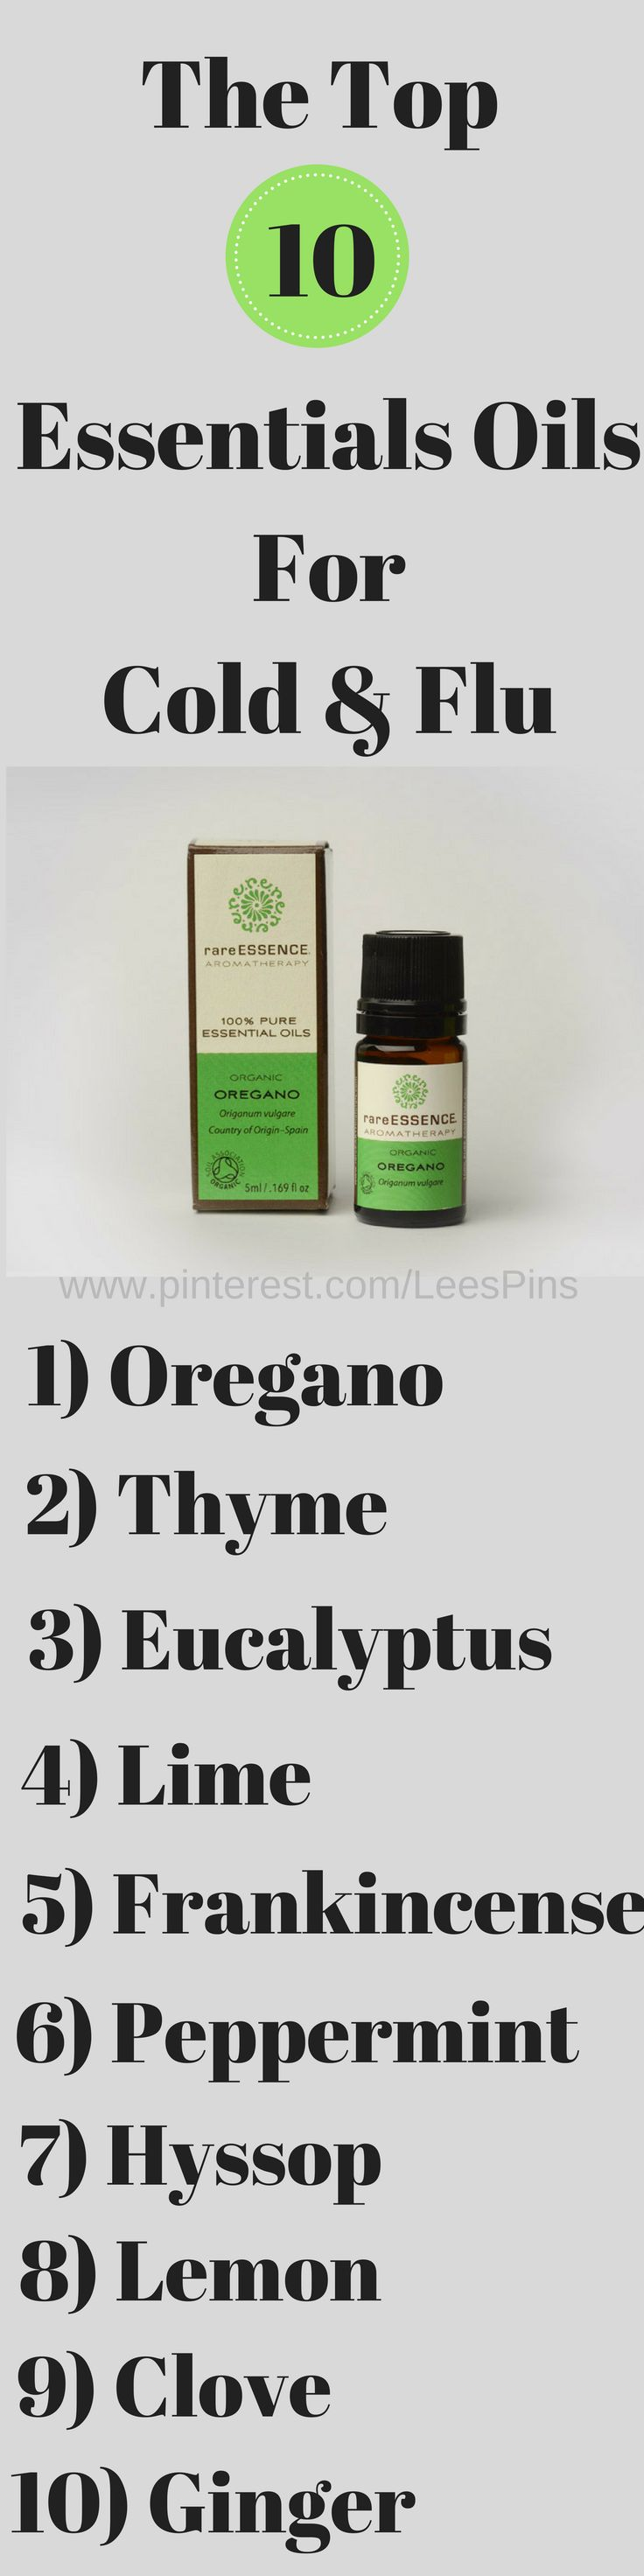 I have some of these but didn't realize that others were so effective like Oregano...the top one! It kills germs and viruses and Frankincense kills cold, flu, and swine flu! amazing! I'll be diffusing these all winter long!  #affiliate